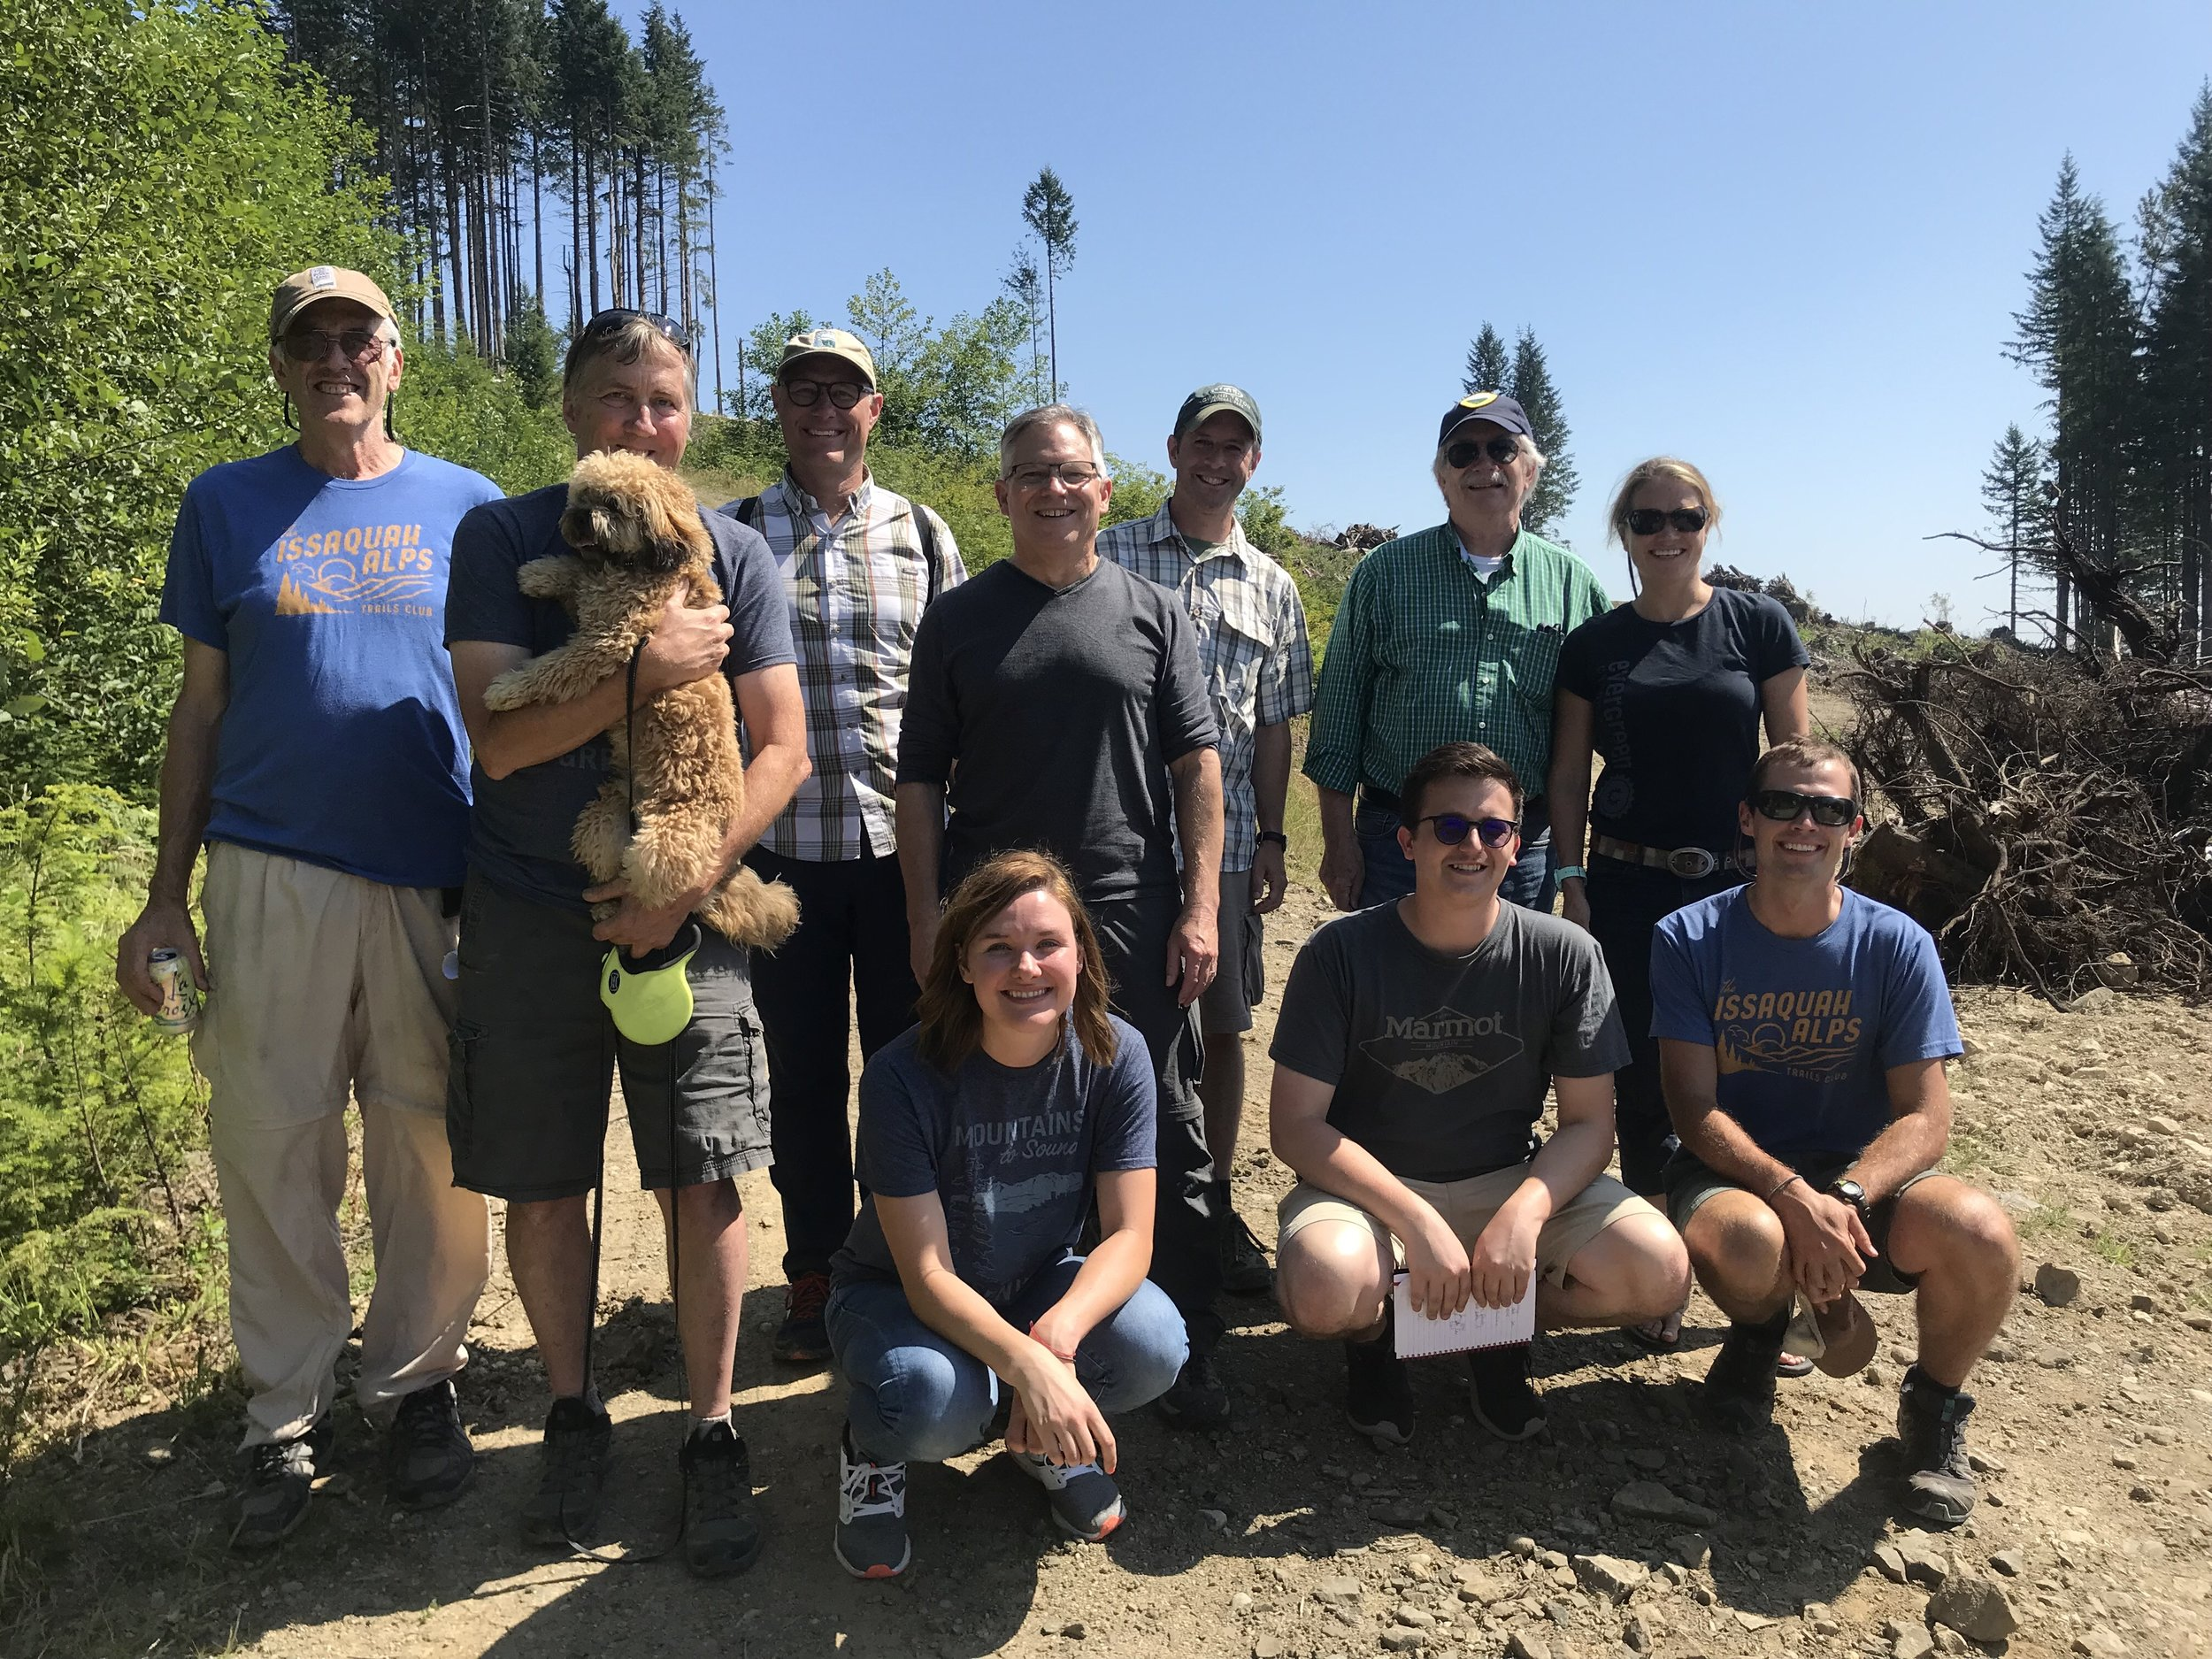 Representative Bill Ramos meets with the Issaquah Alps Trails Club, the Mountains to Sound Greenway Trust, Sierra Club, and Evergreen Mountain Bike Alliance to learn what we must do to allow safe wildlife and recreational trail crossings as Highway 18 is widened to five lanes.